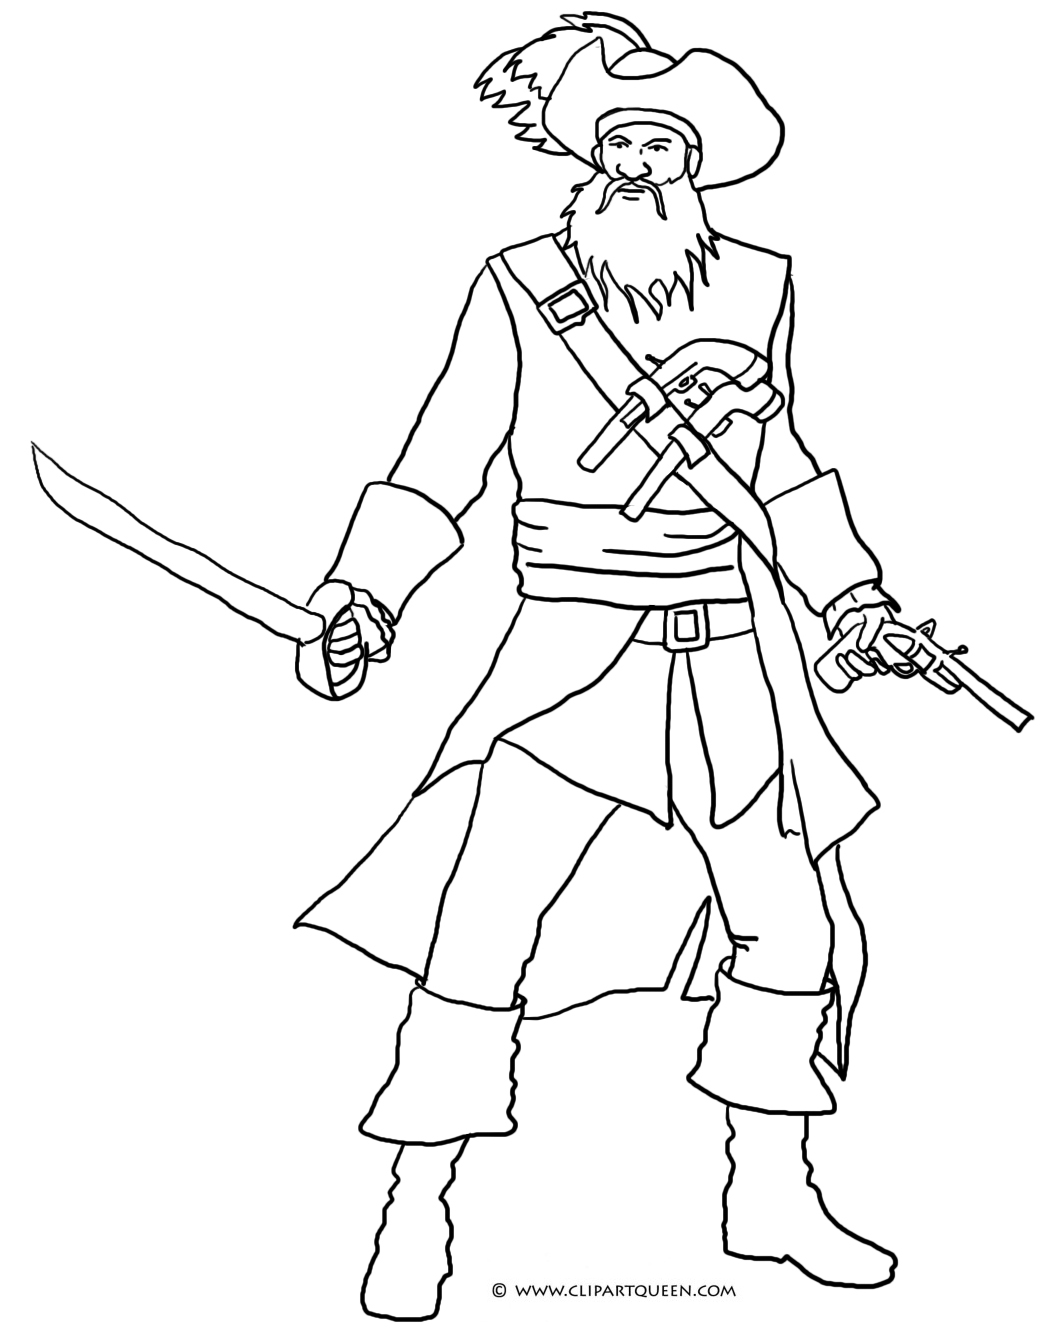 1063x1334 Blackbeard Pirate Coloring Pages